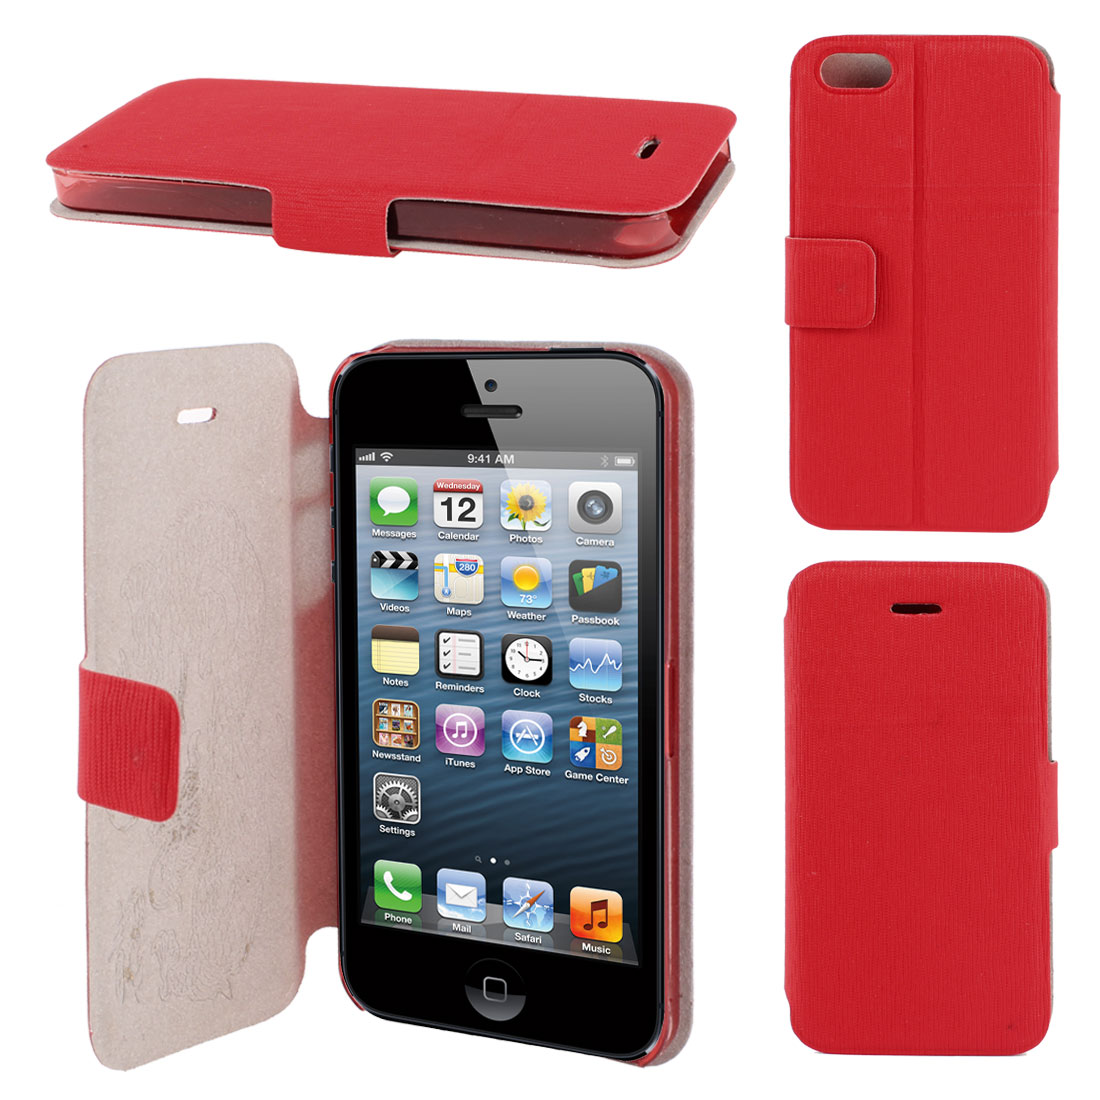 Textured Red Faux Leather Magnetic Flap Flip Case Cover Guard for iPhone 5 5G